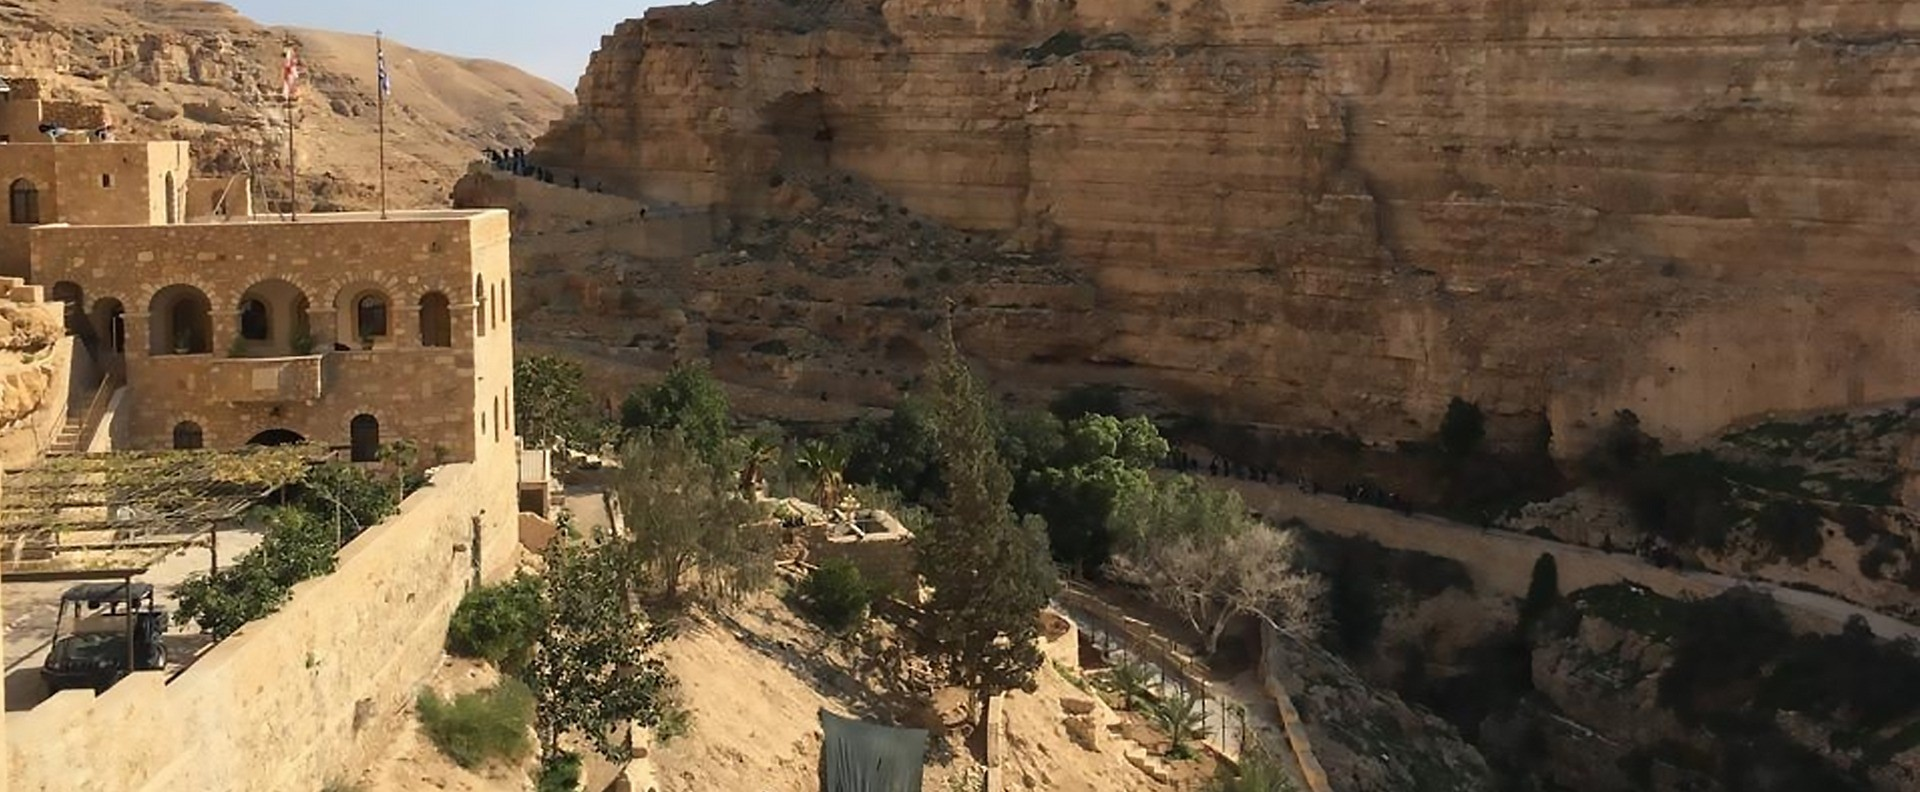 Monastery of Saint George | Jericho churches and Monasteries